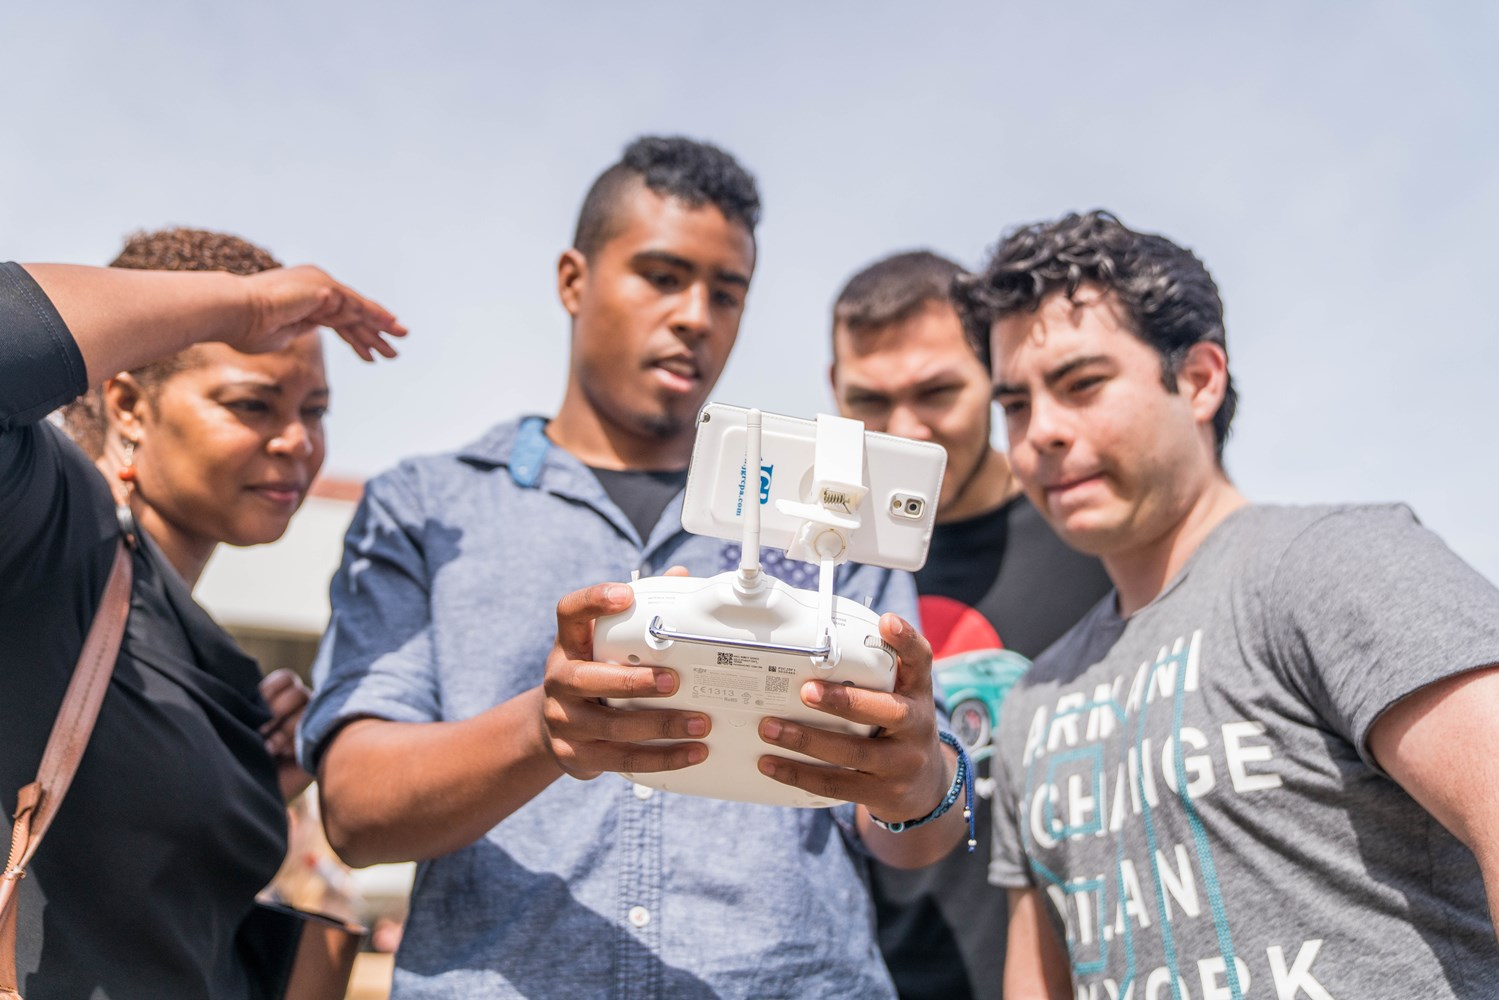 Cameron Cabading (center) introduces others to modern drone technologies at an event with the St. Mary's College Engineering Club